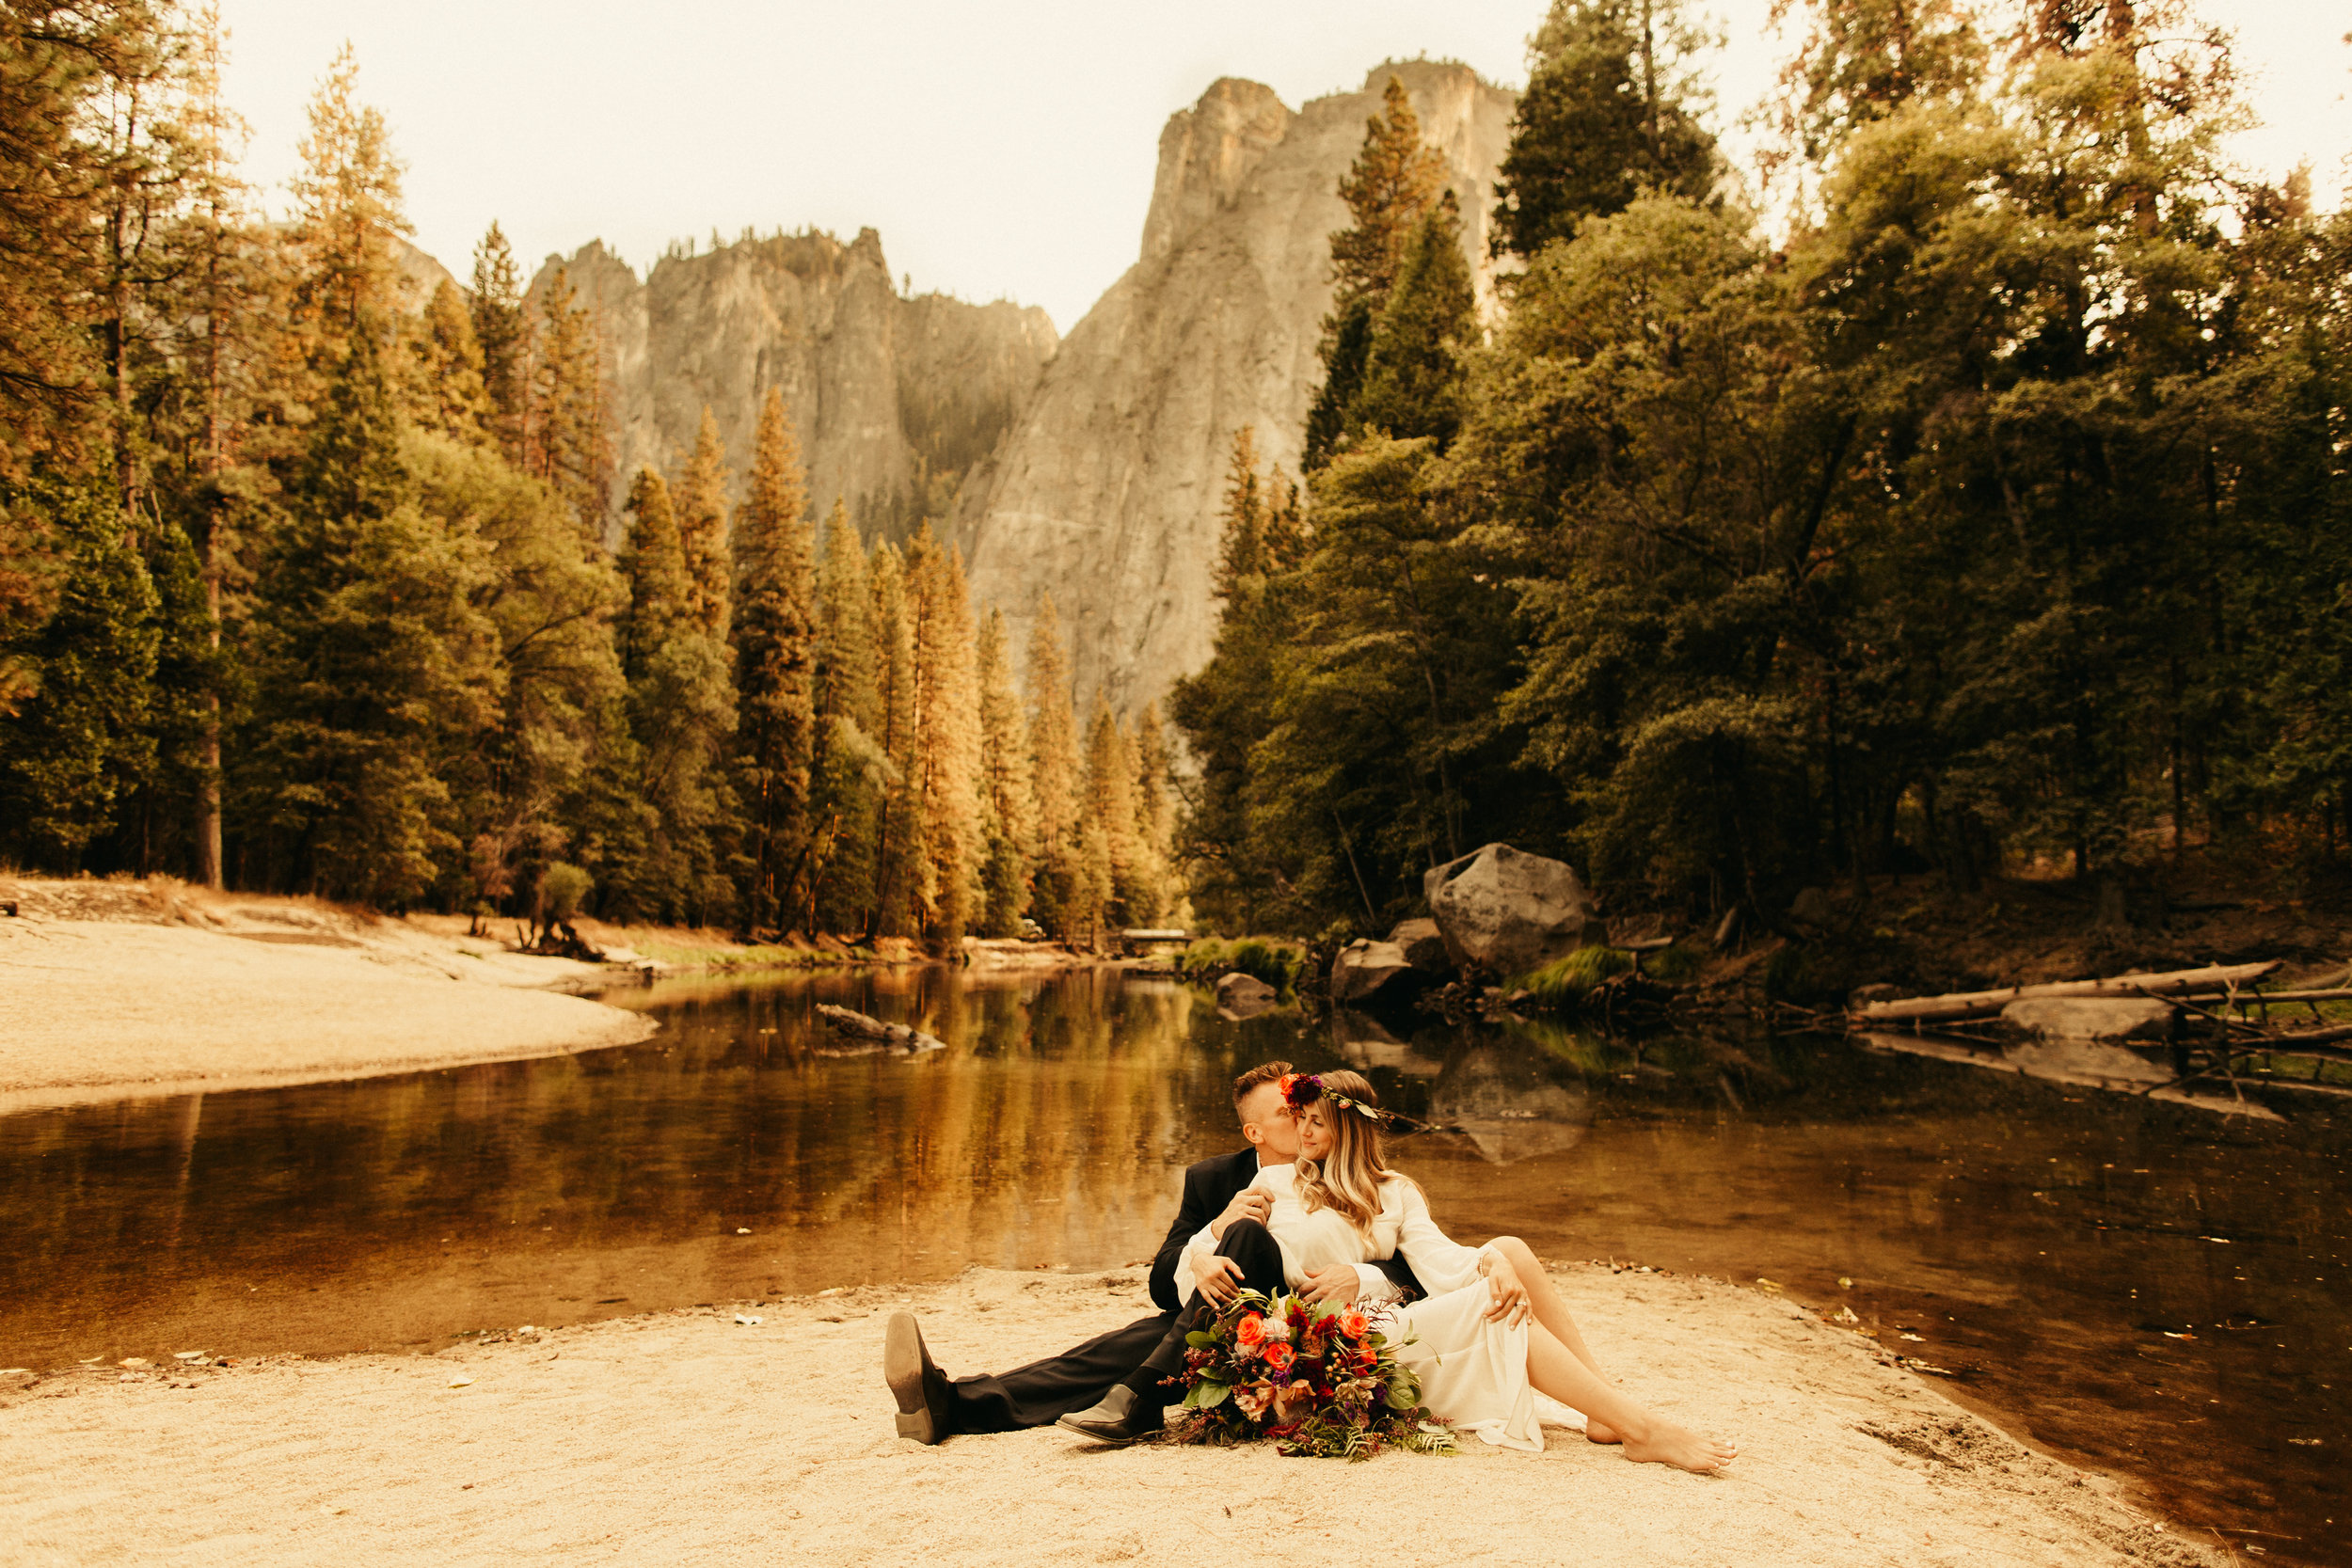 Yosemite Valley (photography by Andie Avery)